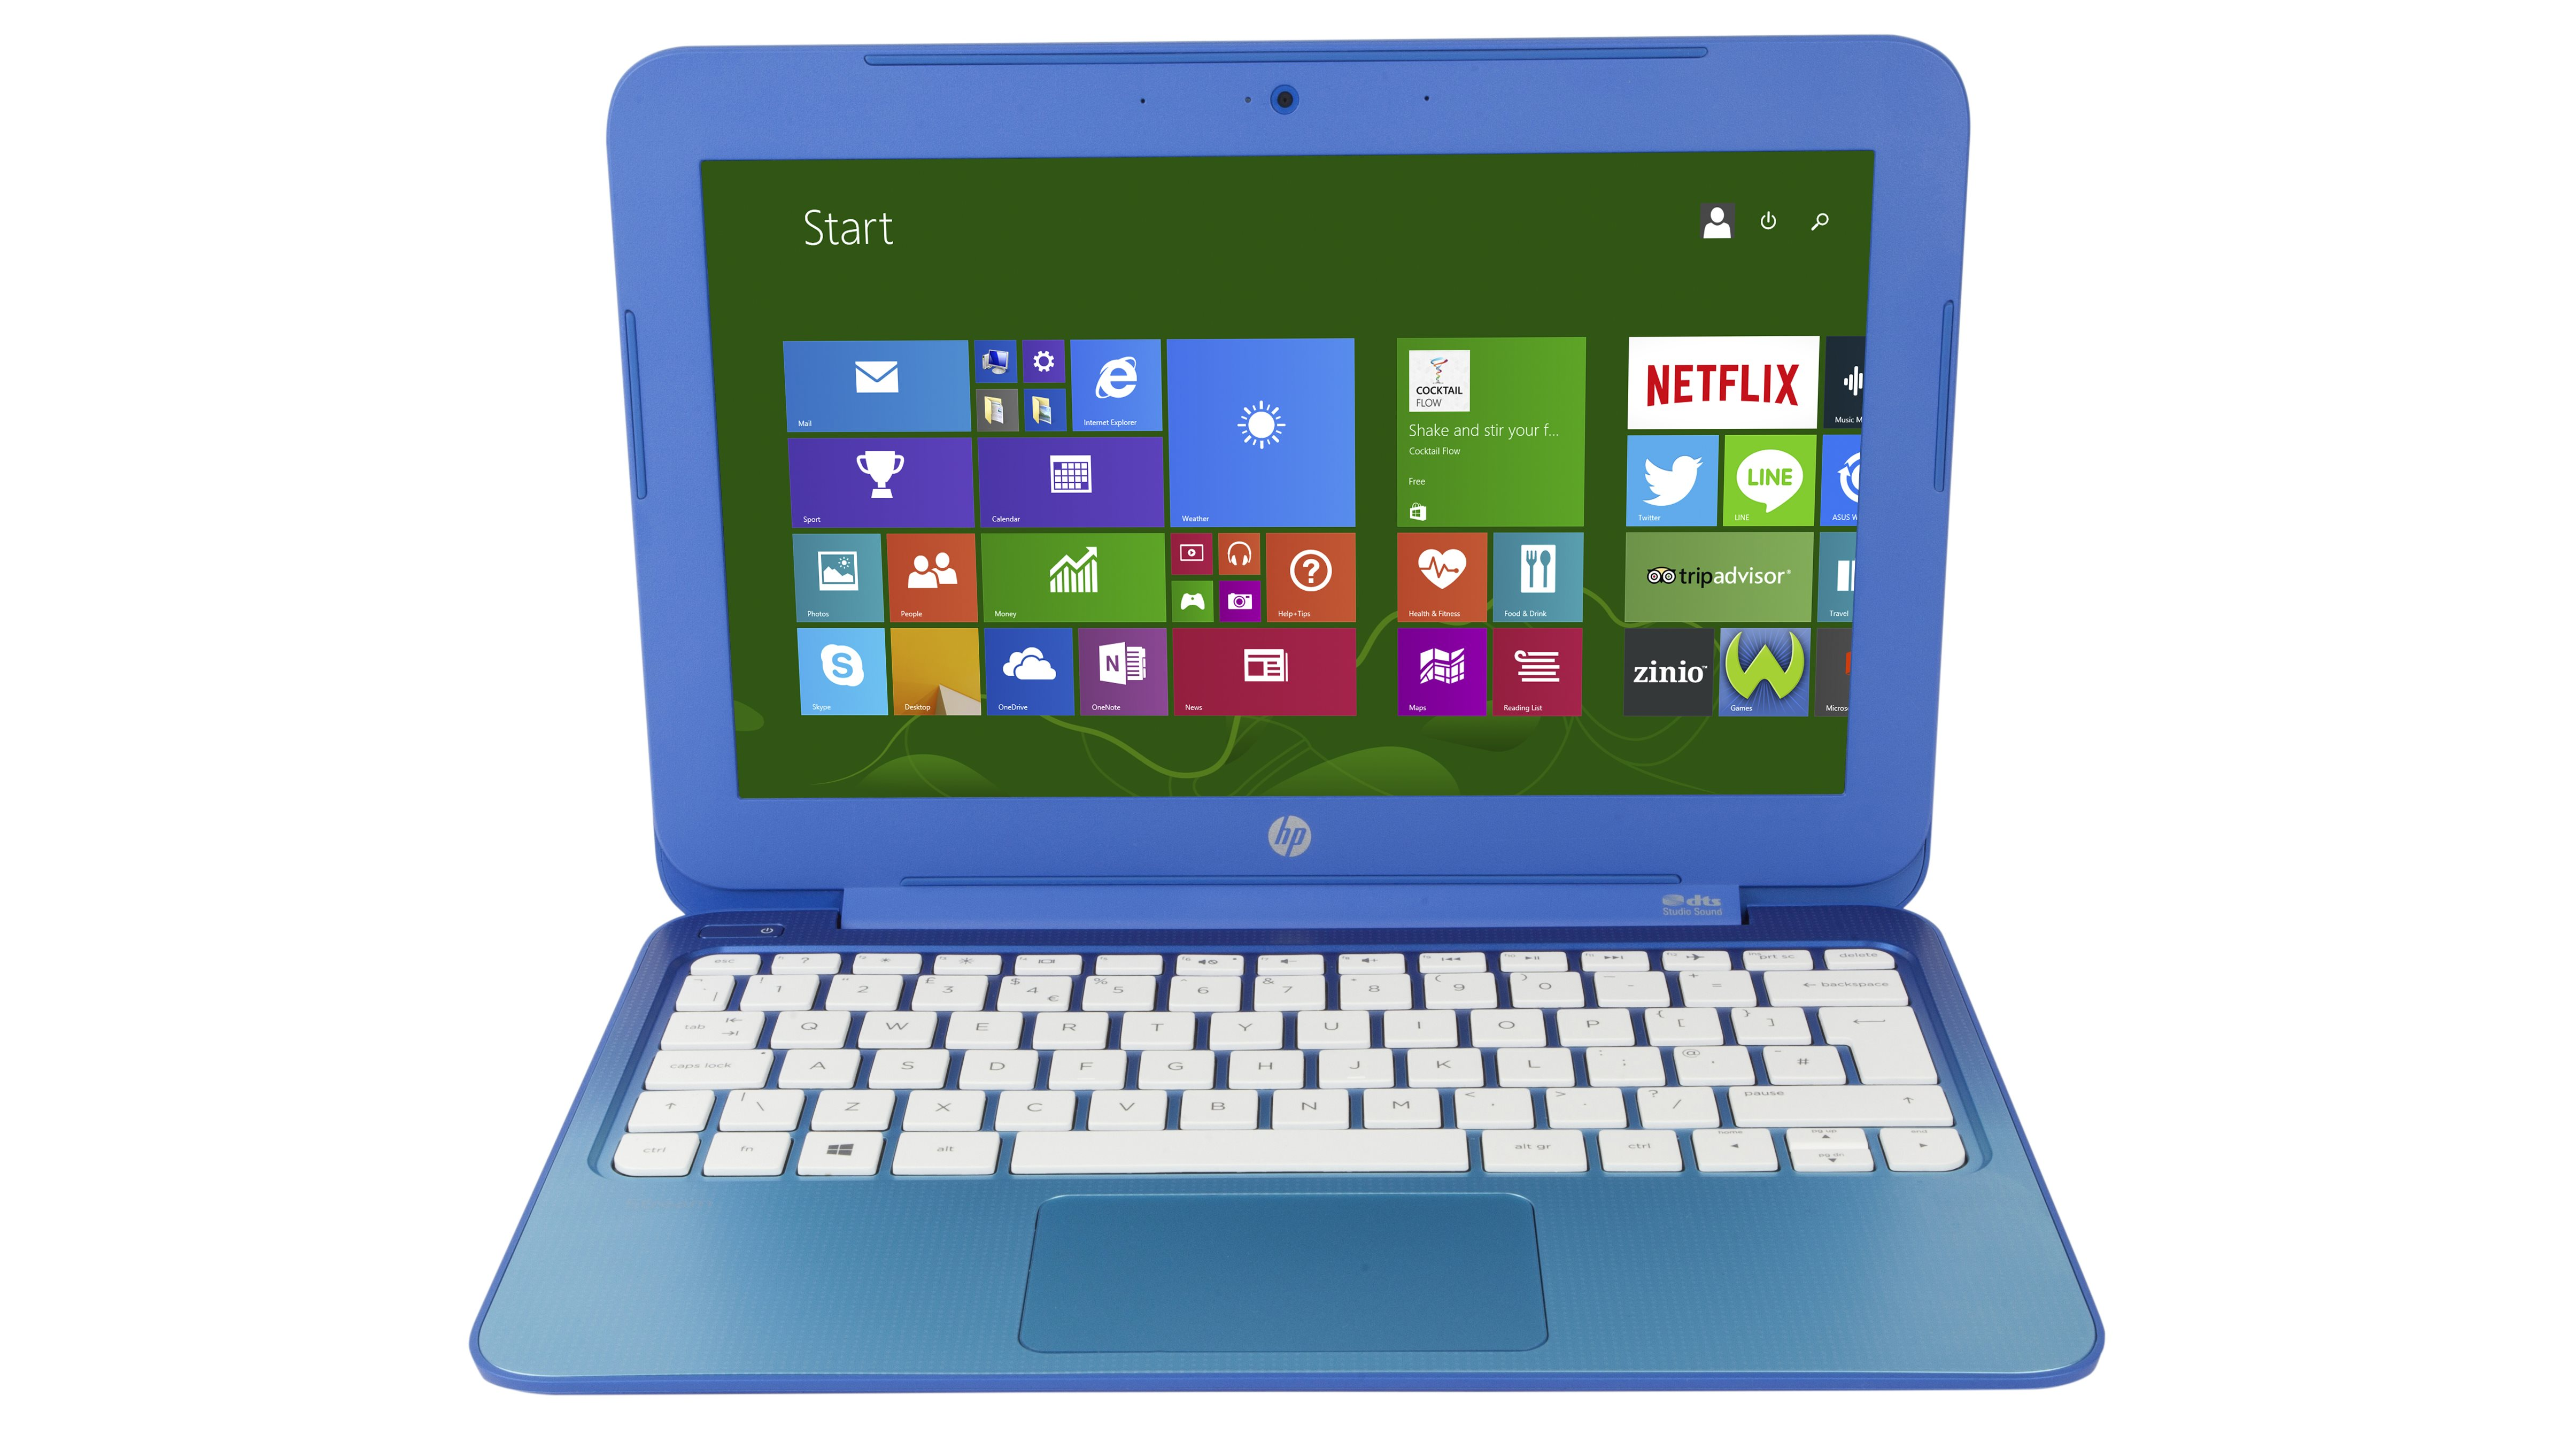 hp stream 11 review still a great bargain expert reviews